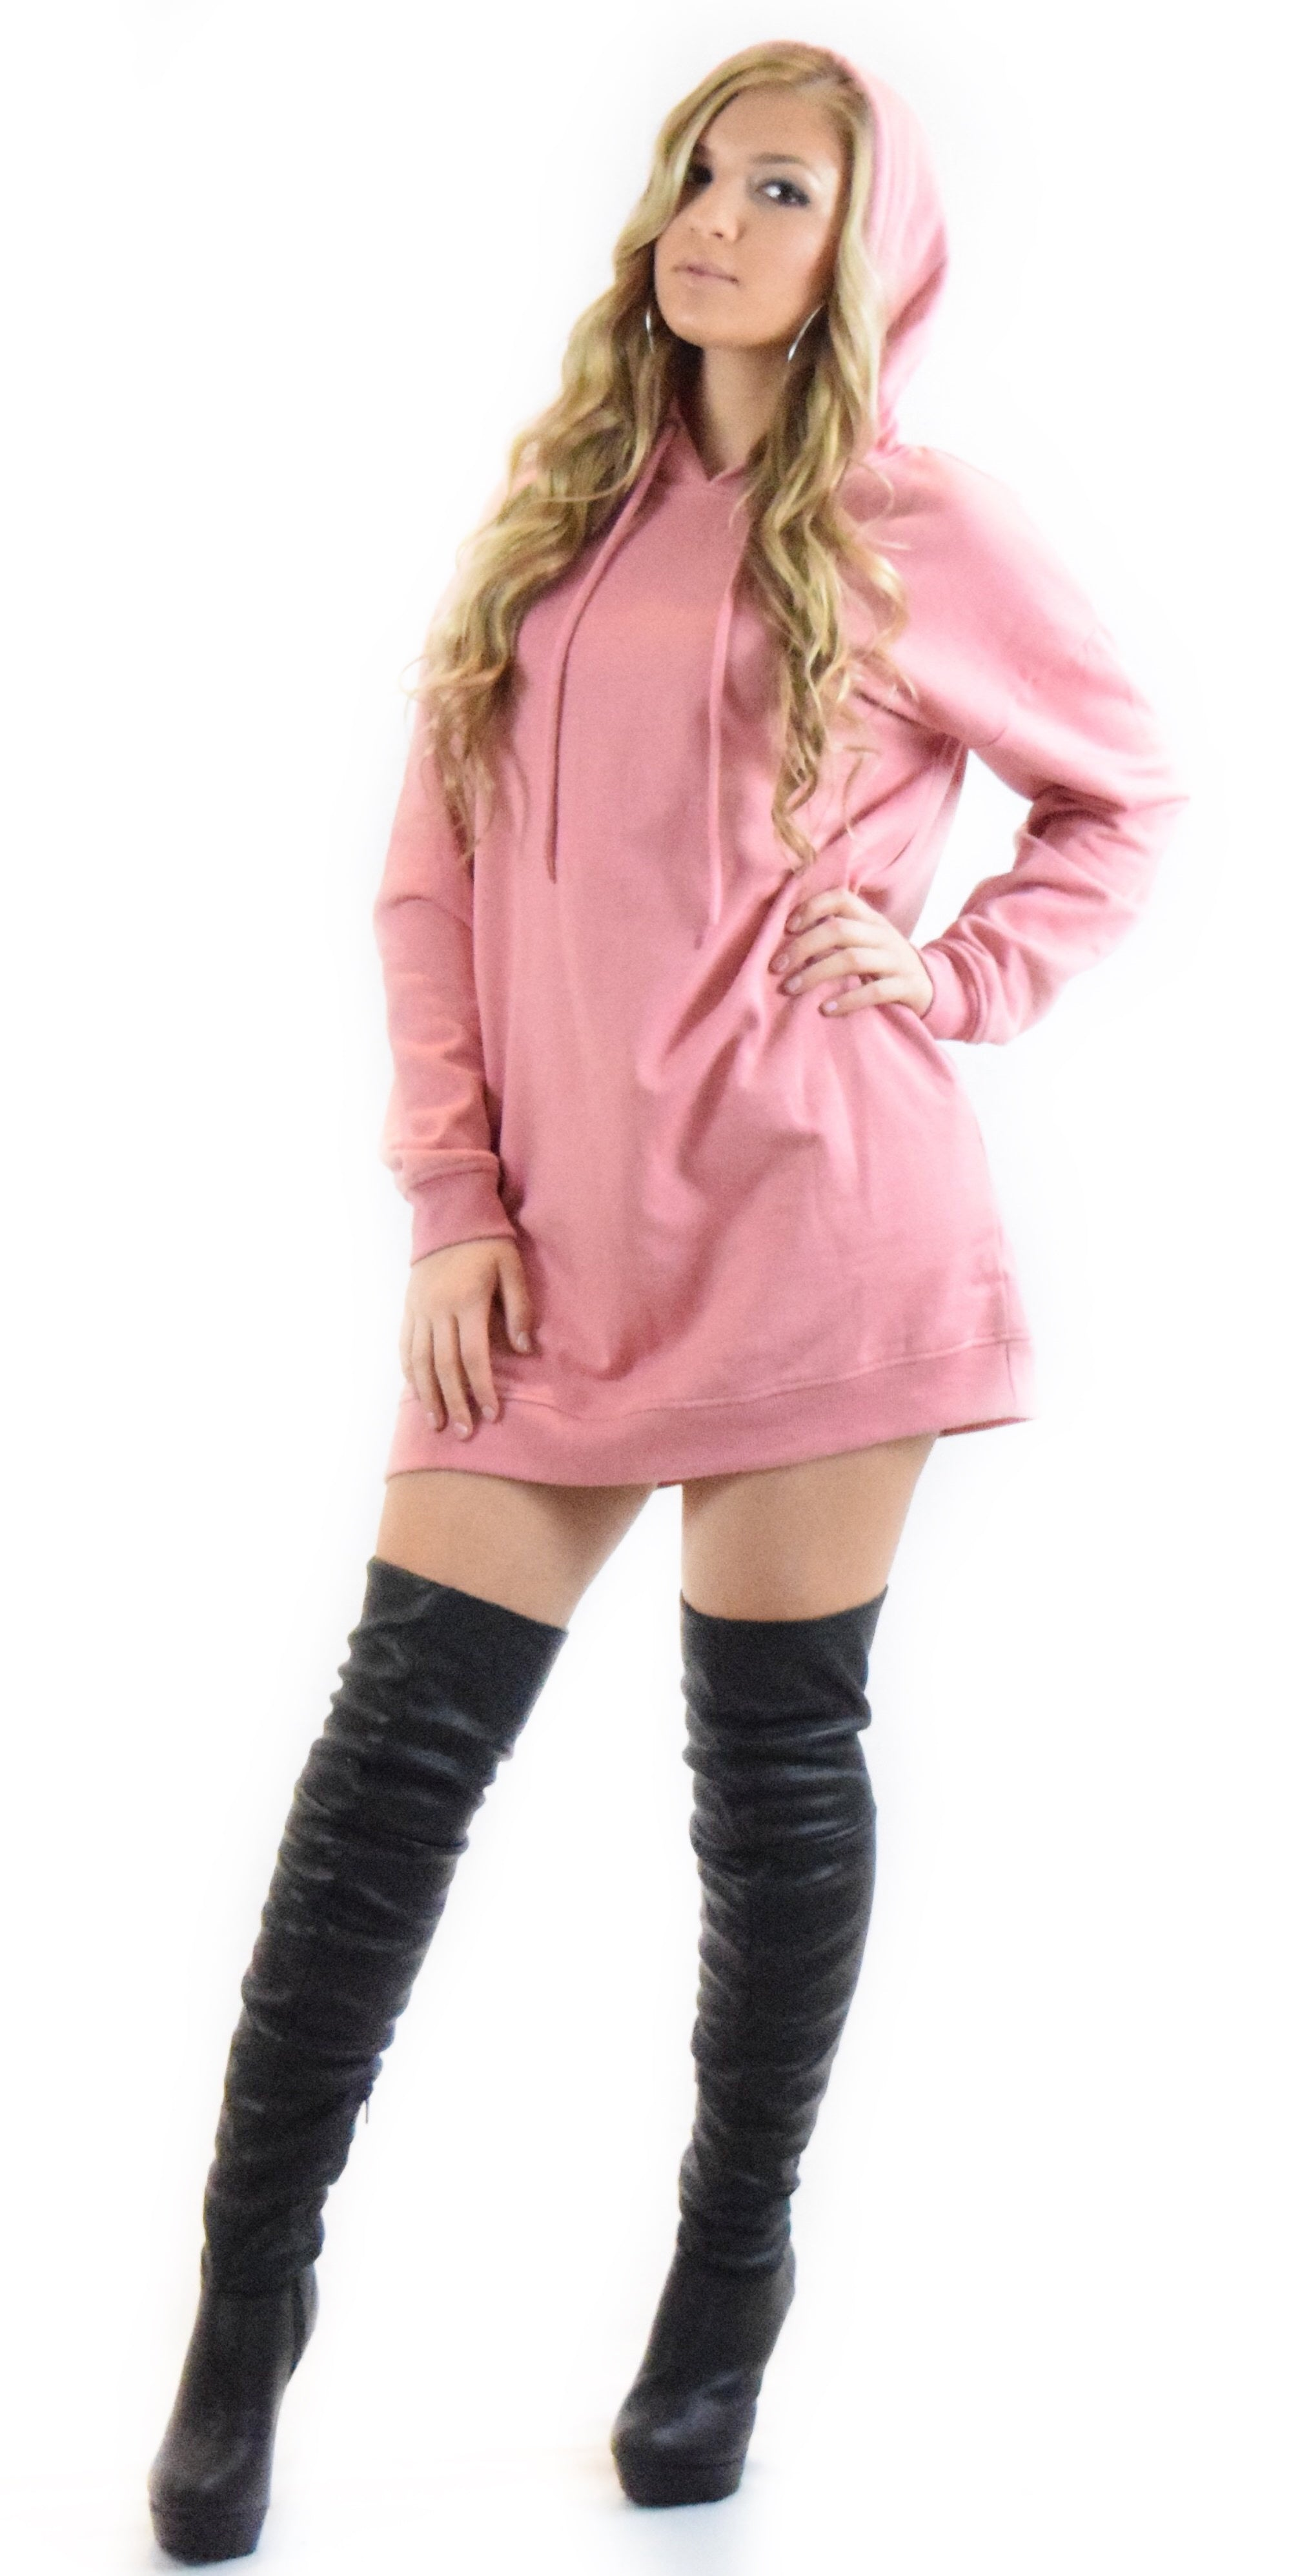 sweater hoodie dress dusty rose pink loose fit oversized long sleeve strings pocket style trend trending woman girl teen clothing fashion